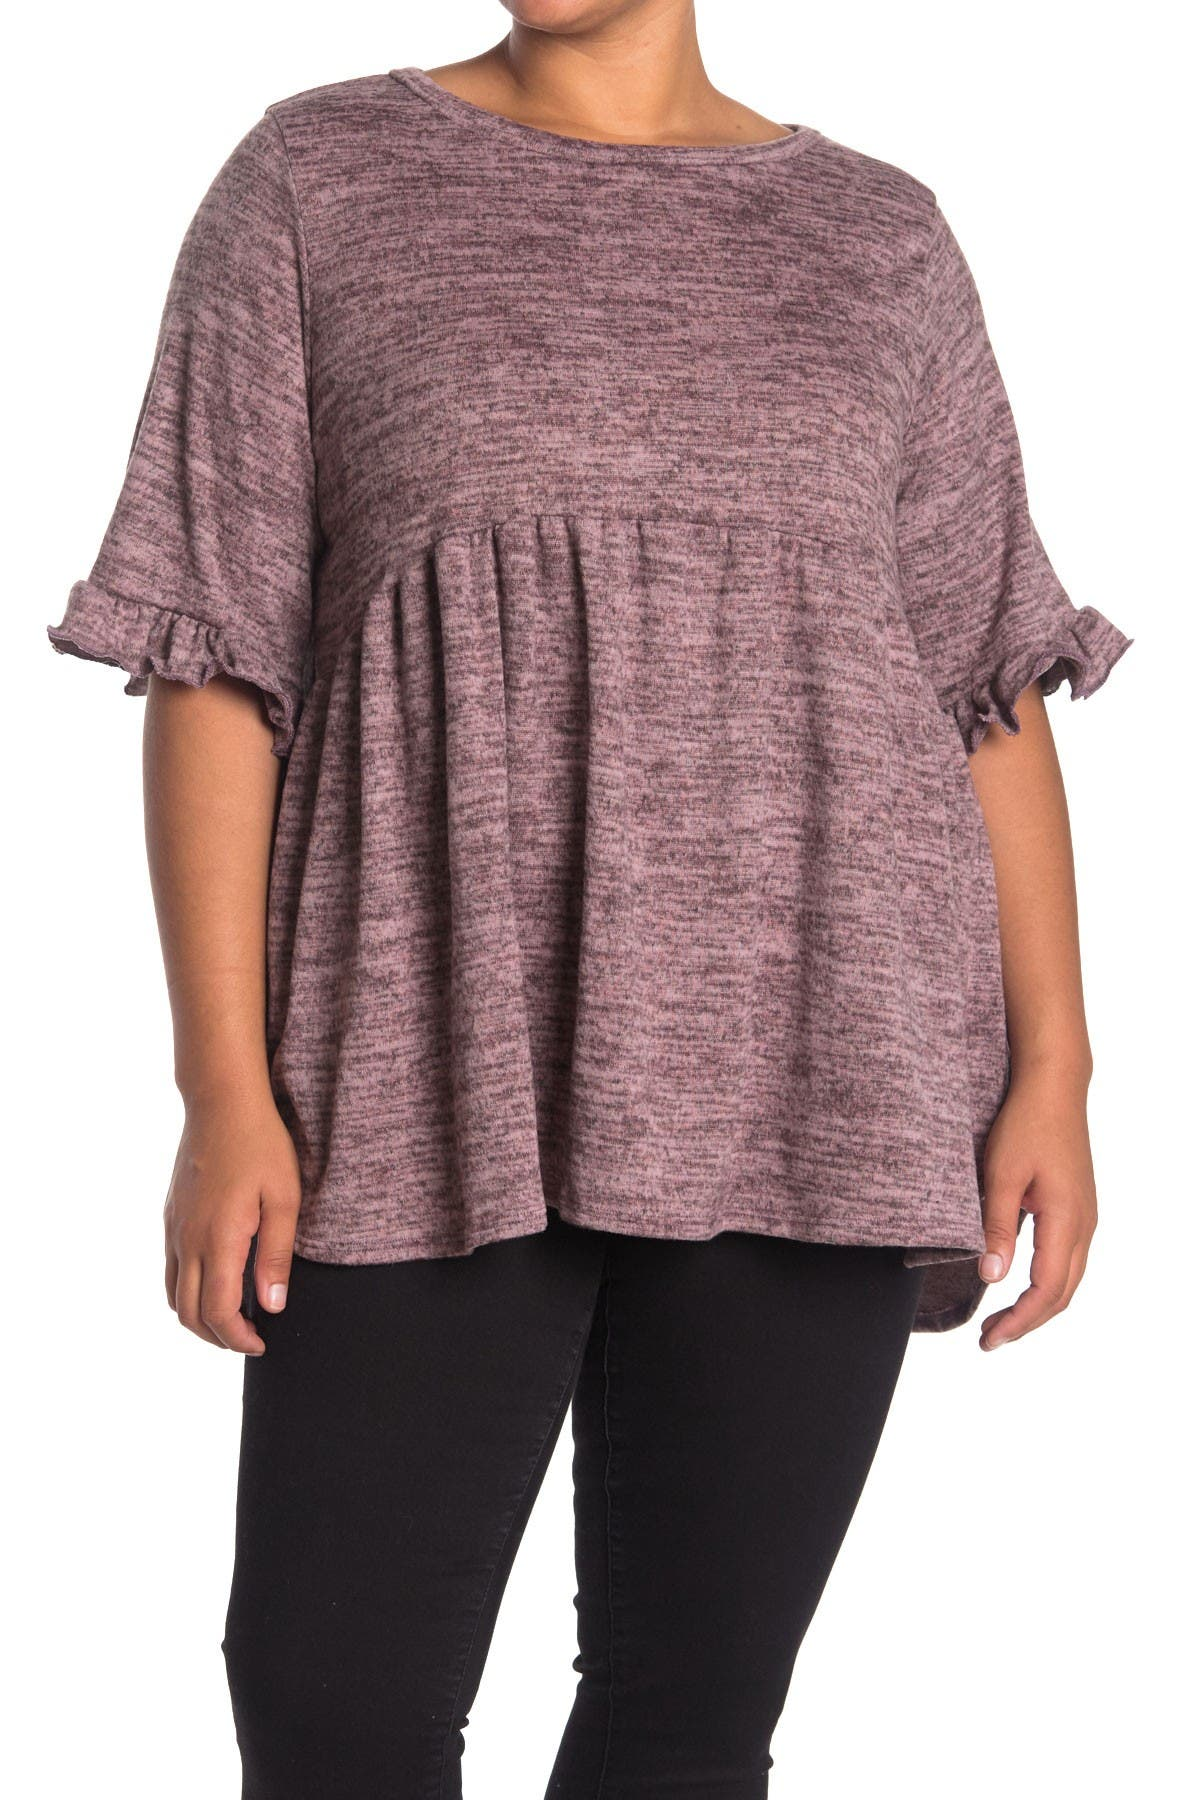 Image of Forgotten Grace Hacci Elbow Sleeve Babydoll Tunic Top